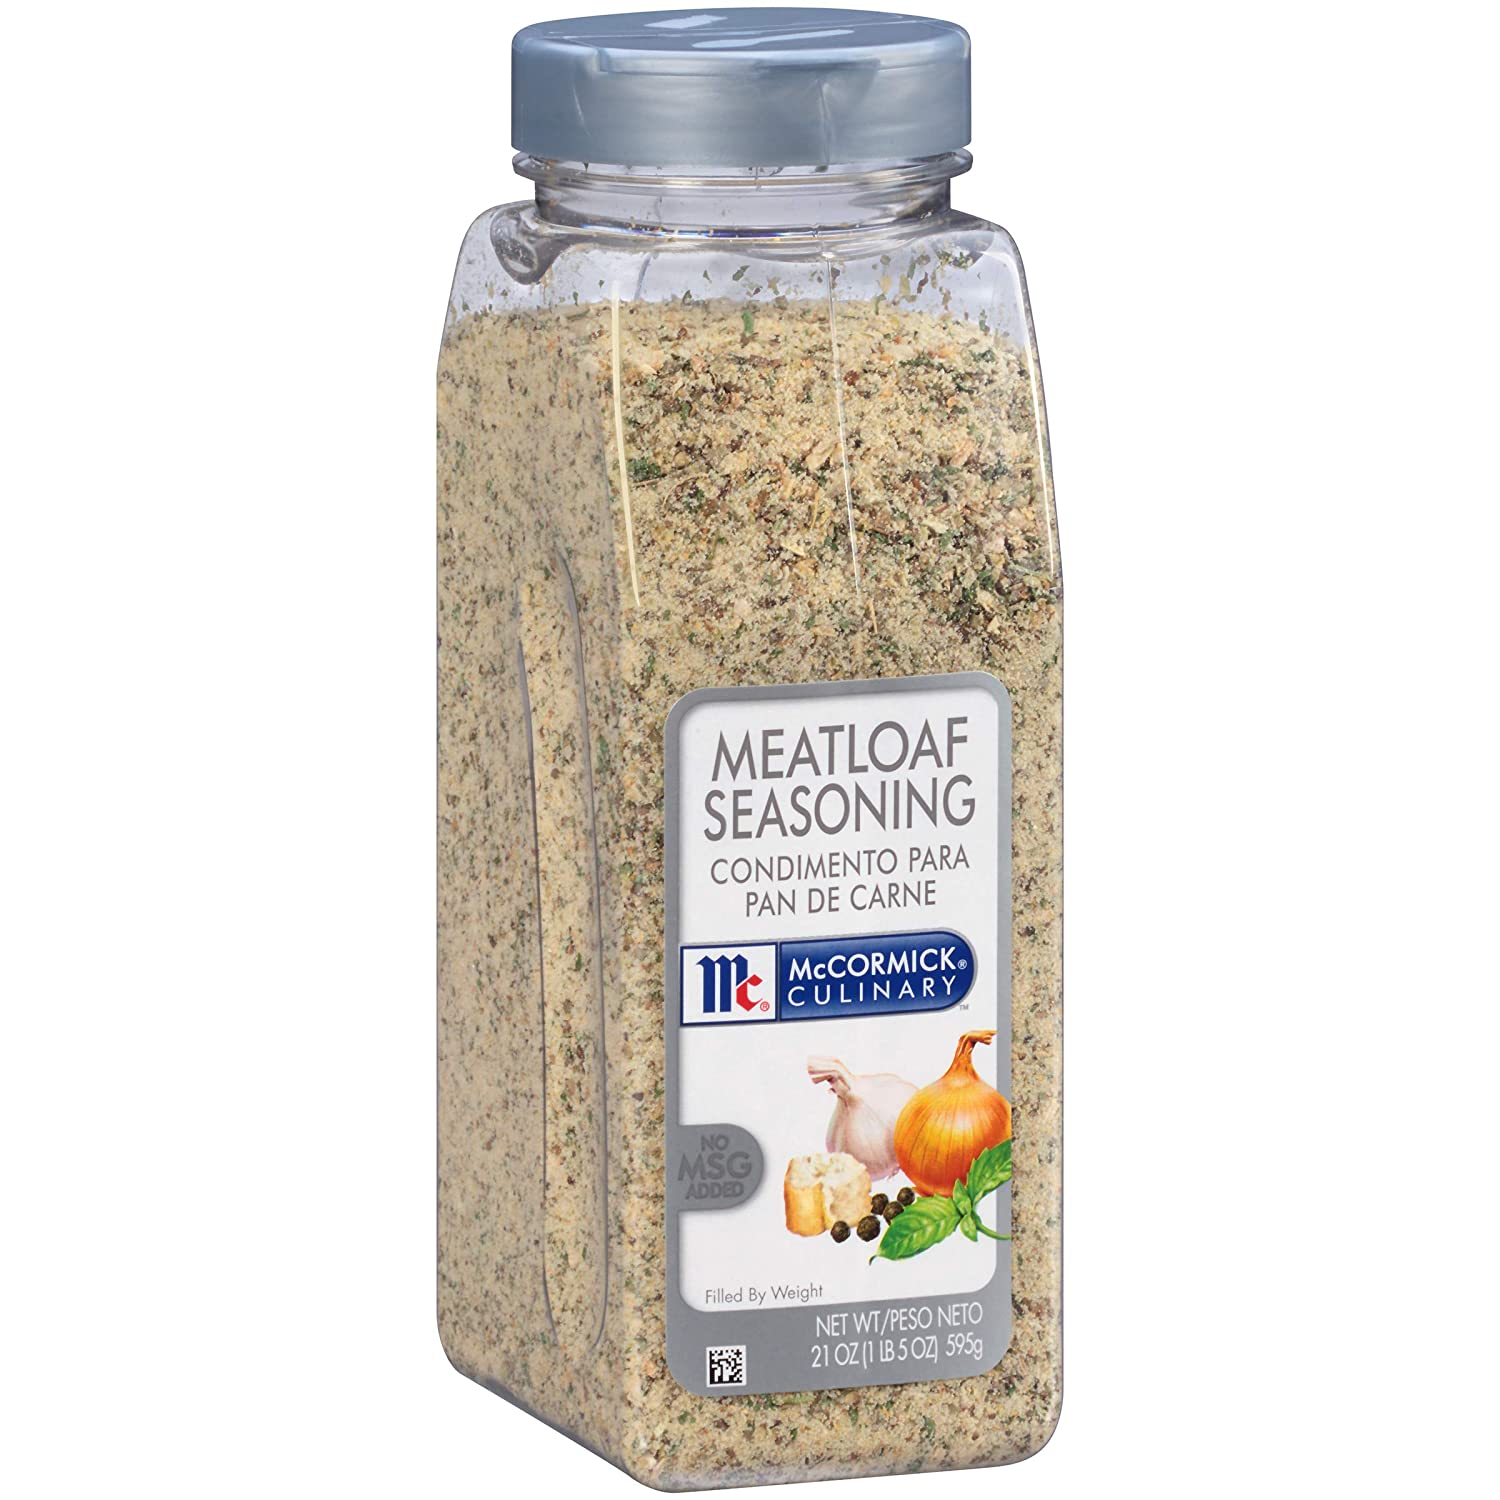 McCormick Culinary Meatloaf Seasoning, 21 oz